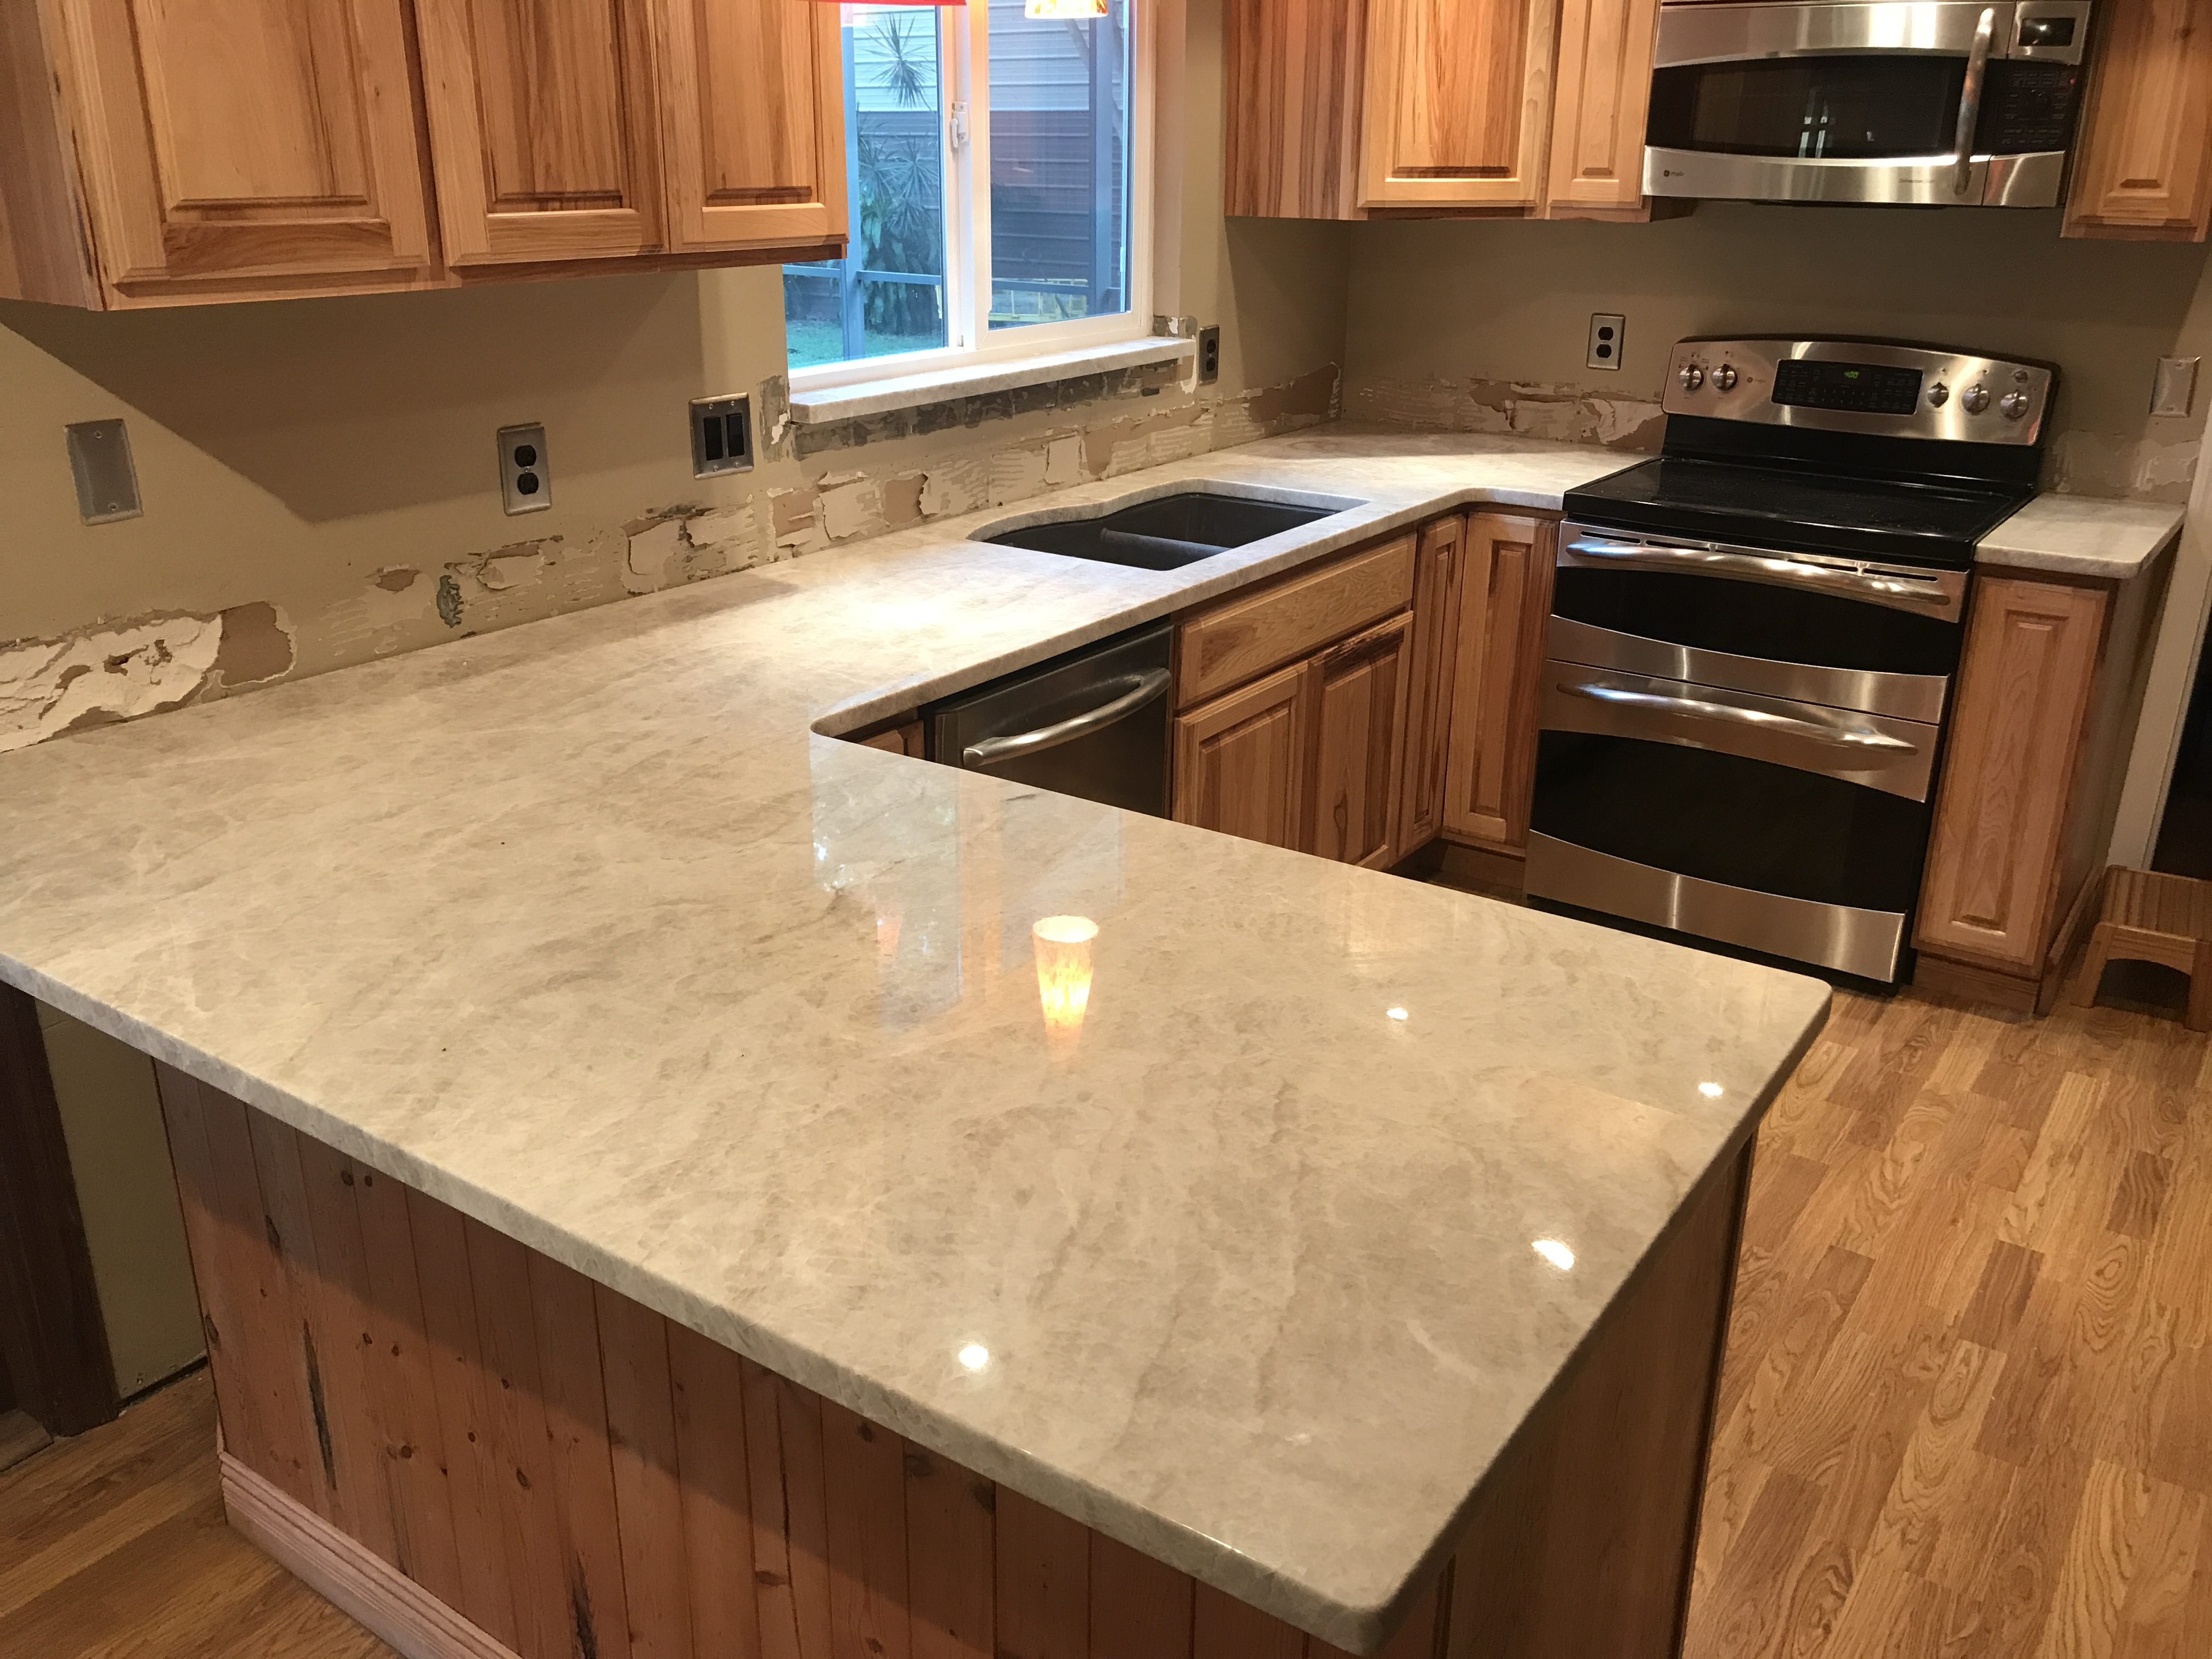 Orlando Kitchen And Bath Is The Premiere Design Center For Your Next Kitchen  And Bath Upgrade Or Complete Home Renovation. Conveniently Located Adjacent  To ...